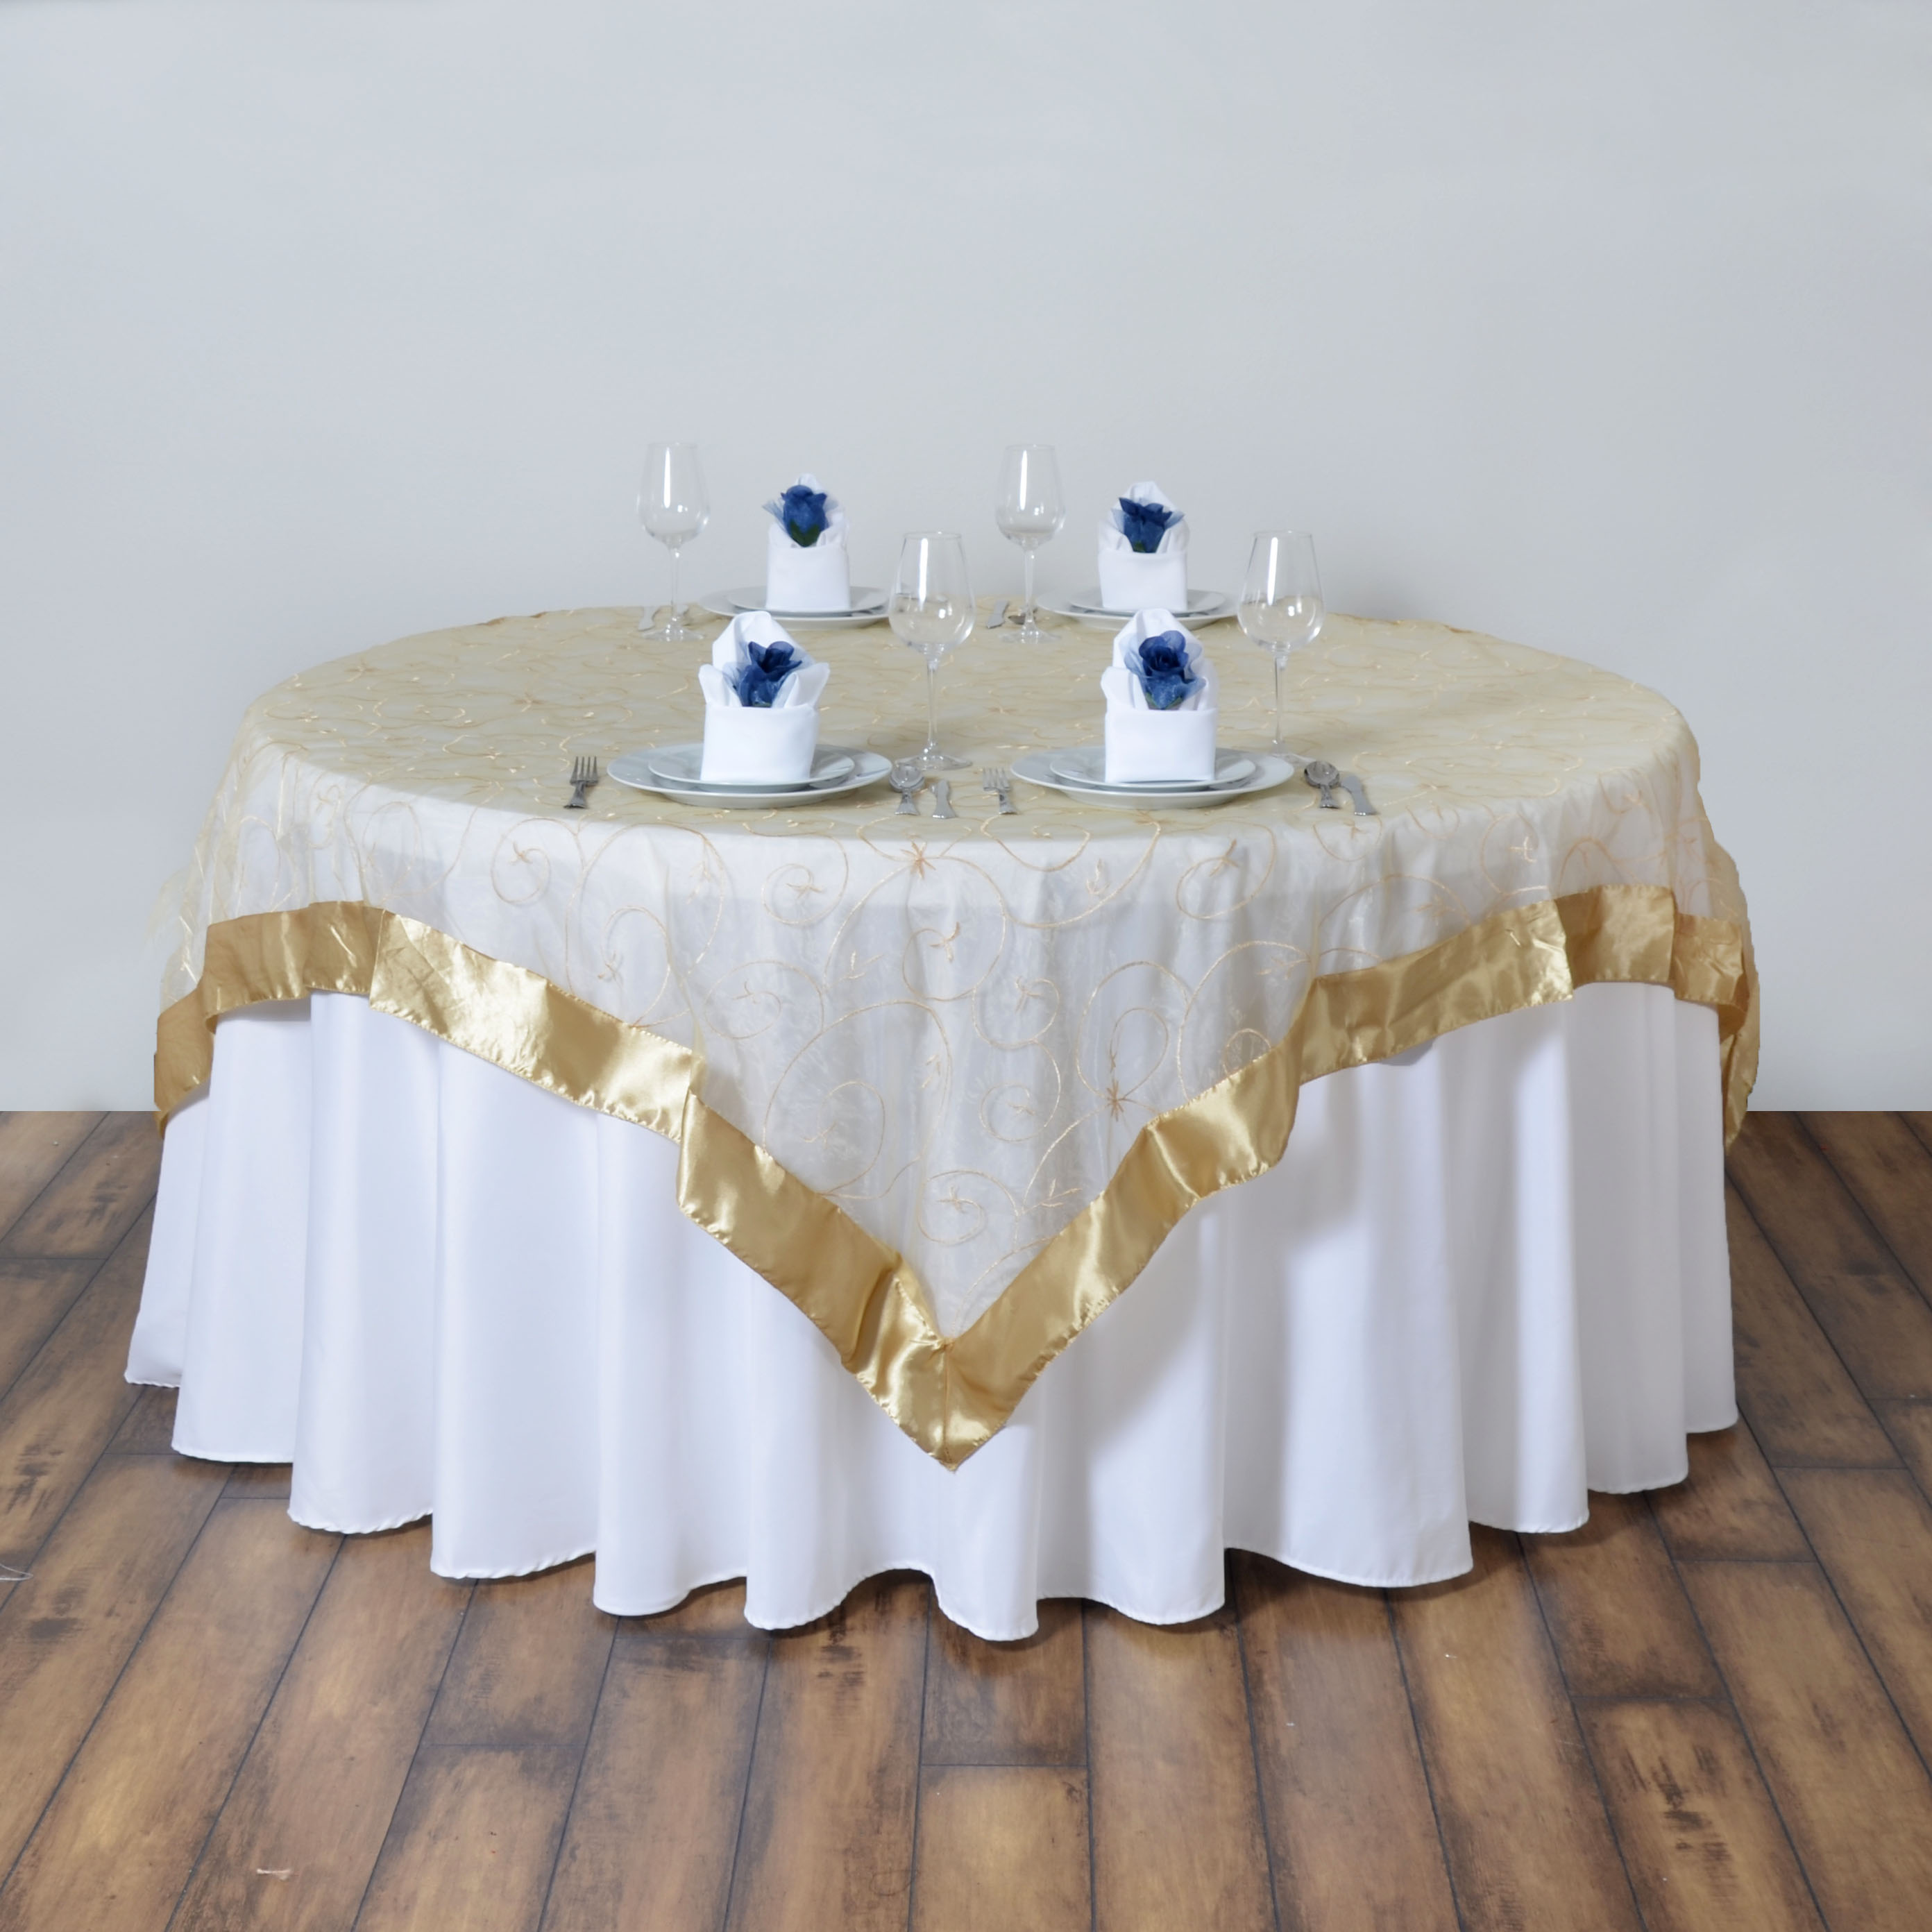 72x72 Quot Embroidered Sheer Organza Table Overlay Unique